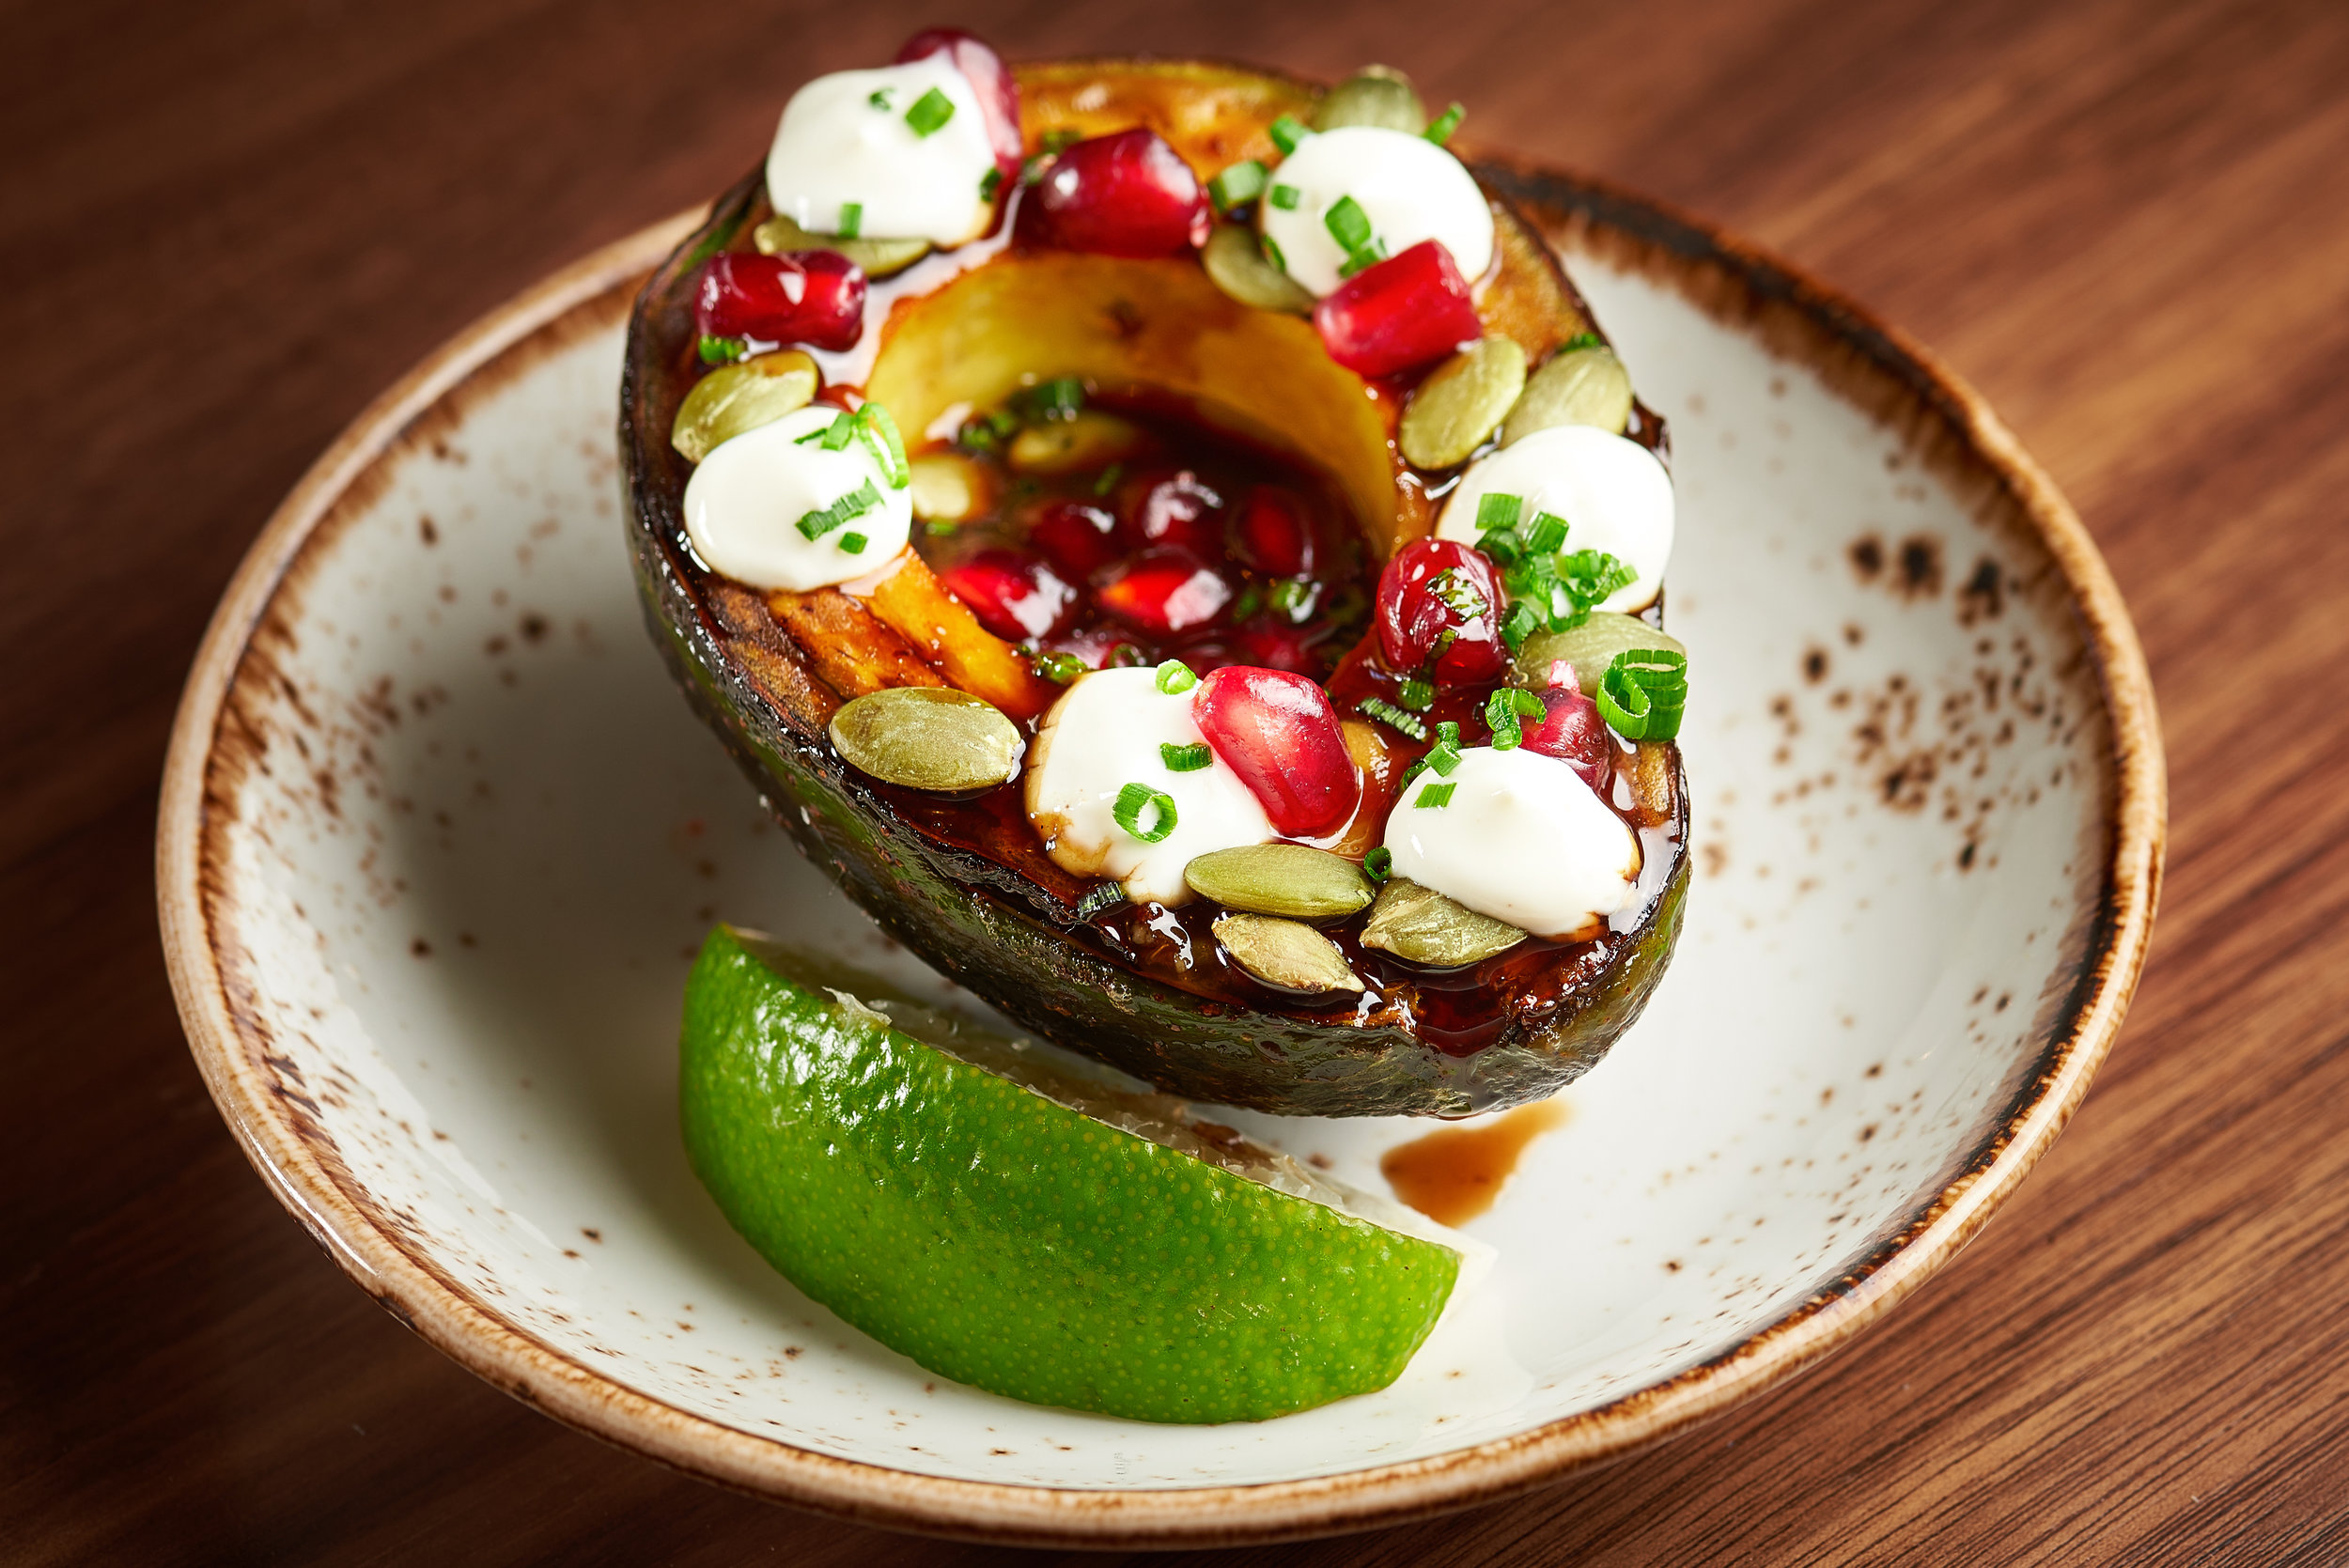 Professional food photo of grilled avocado salad with pomegranate and cheese. Commercial photography